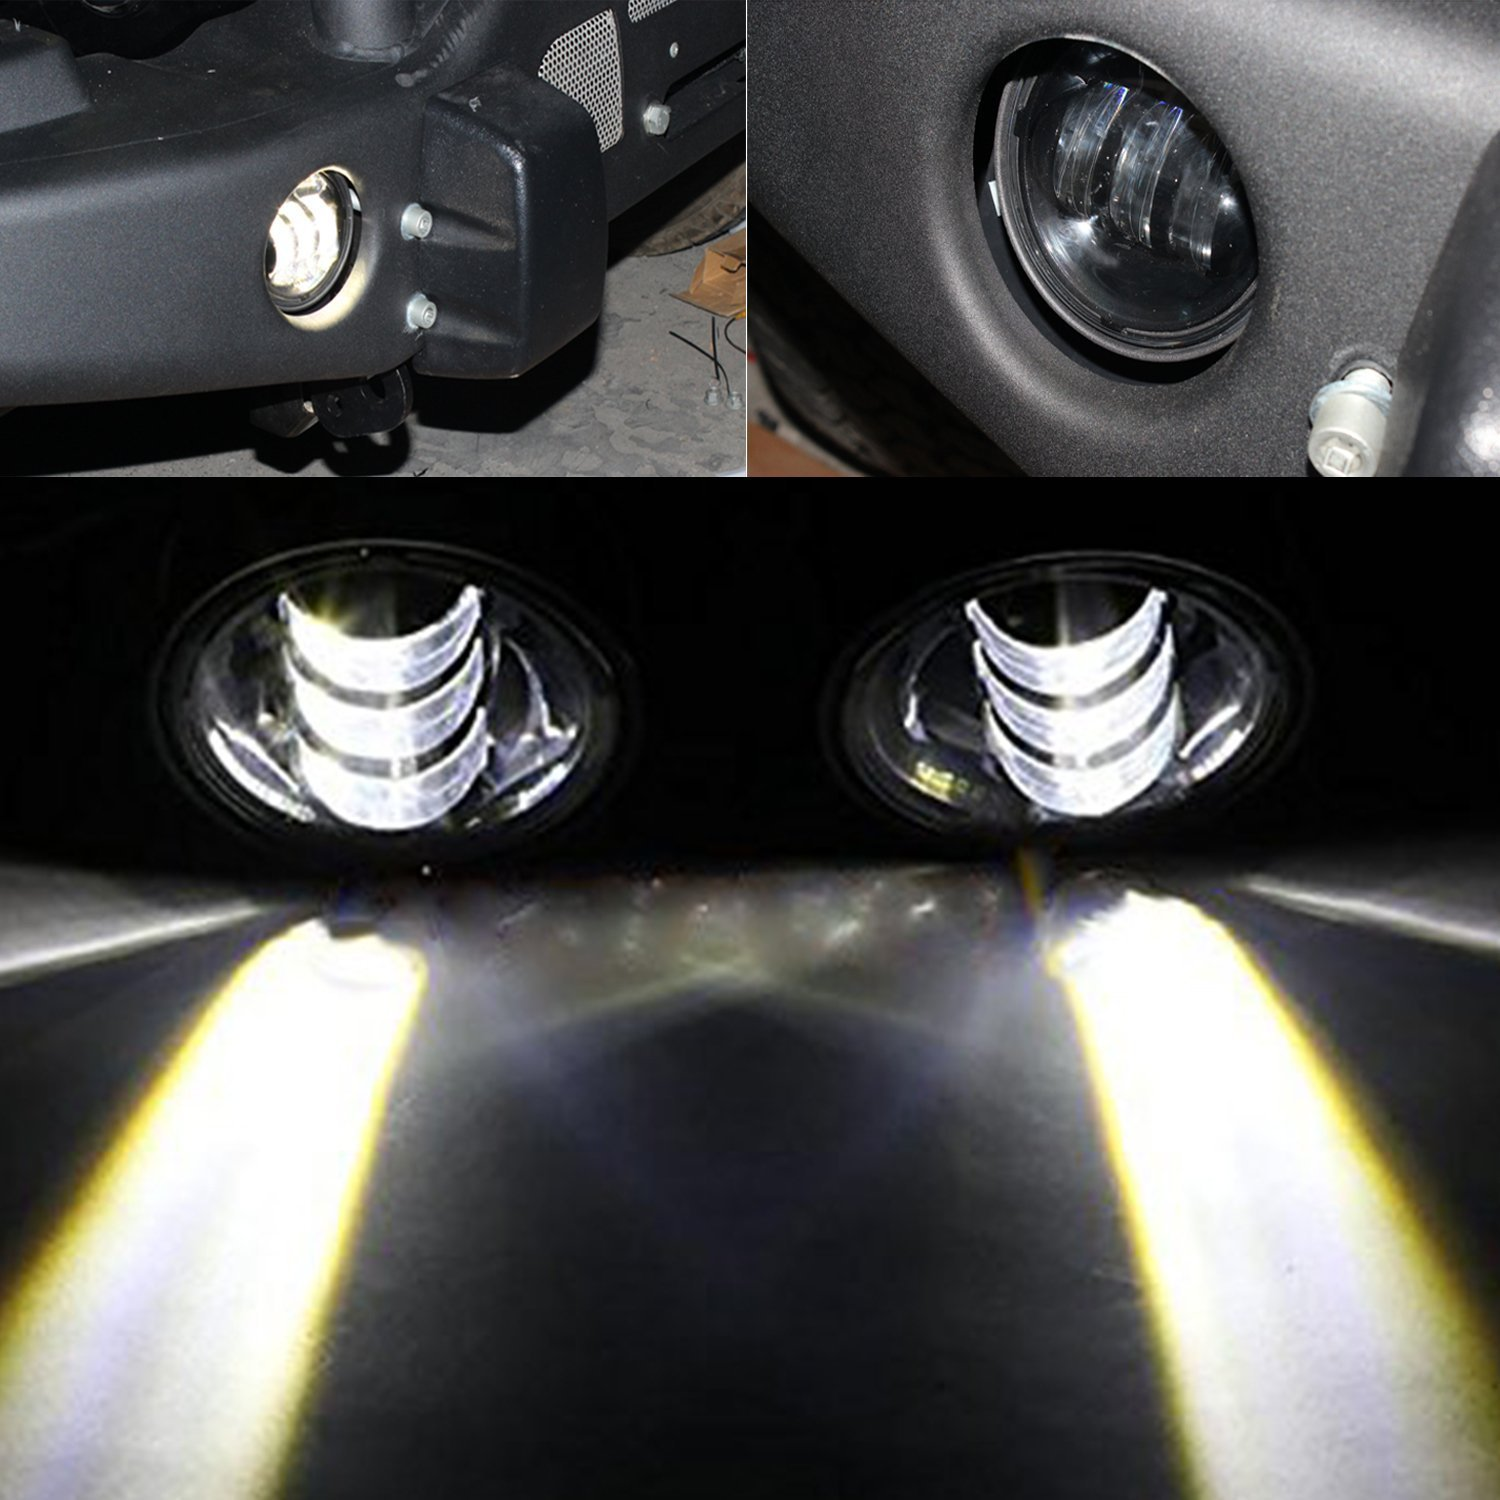 Amazon 4 led fog lights for jeep wrangler jk led fog lamps amazon 4 led fog lights for jeep wrangler jk led fog lamps bulb auto len projector headlight driving offroad lamp for jeep wrangler dodge chrysler publicscrutiny Image collections